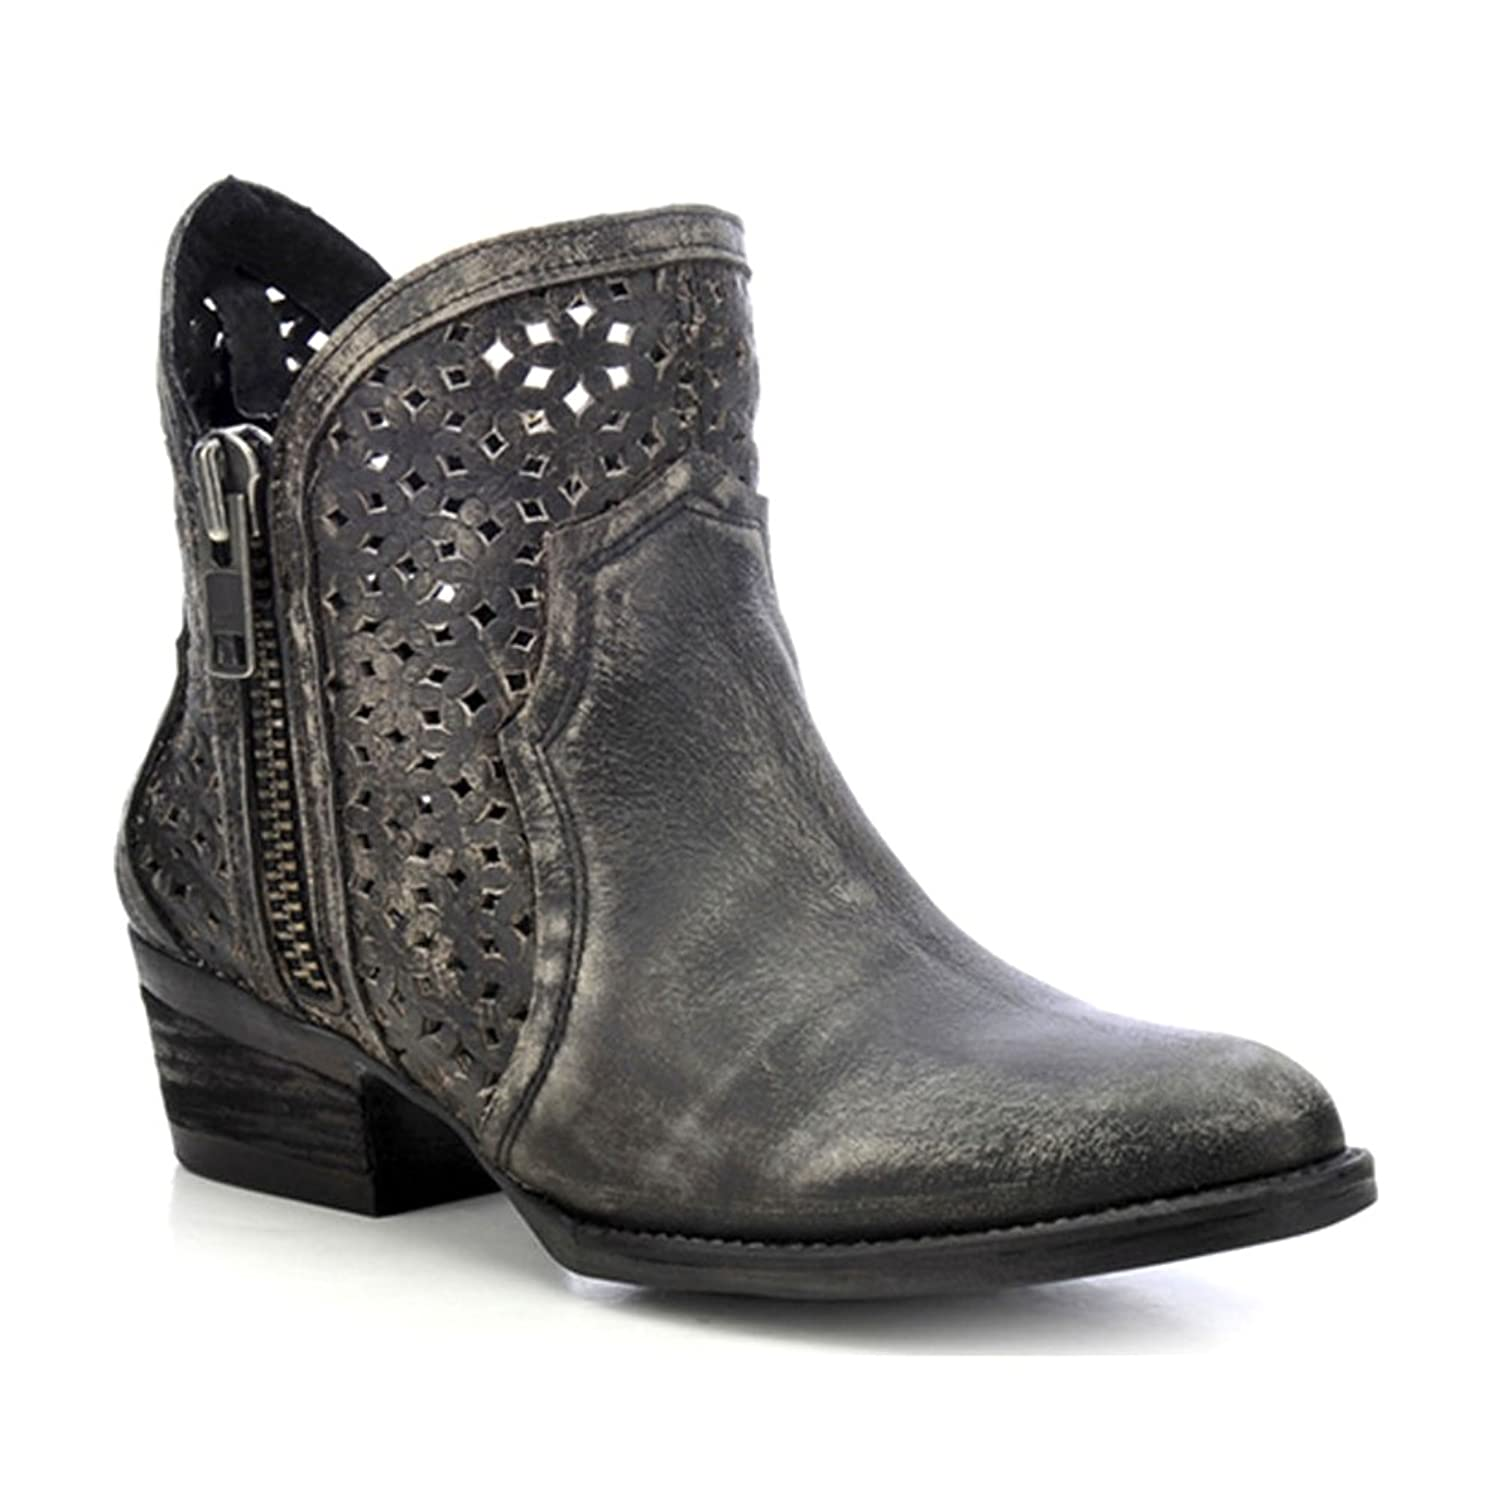 Women's Circle G by Corral Ankle Boot Cowhide Round Toe Boot Charcoal